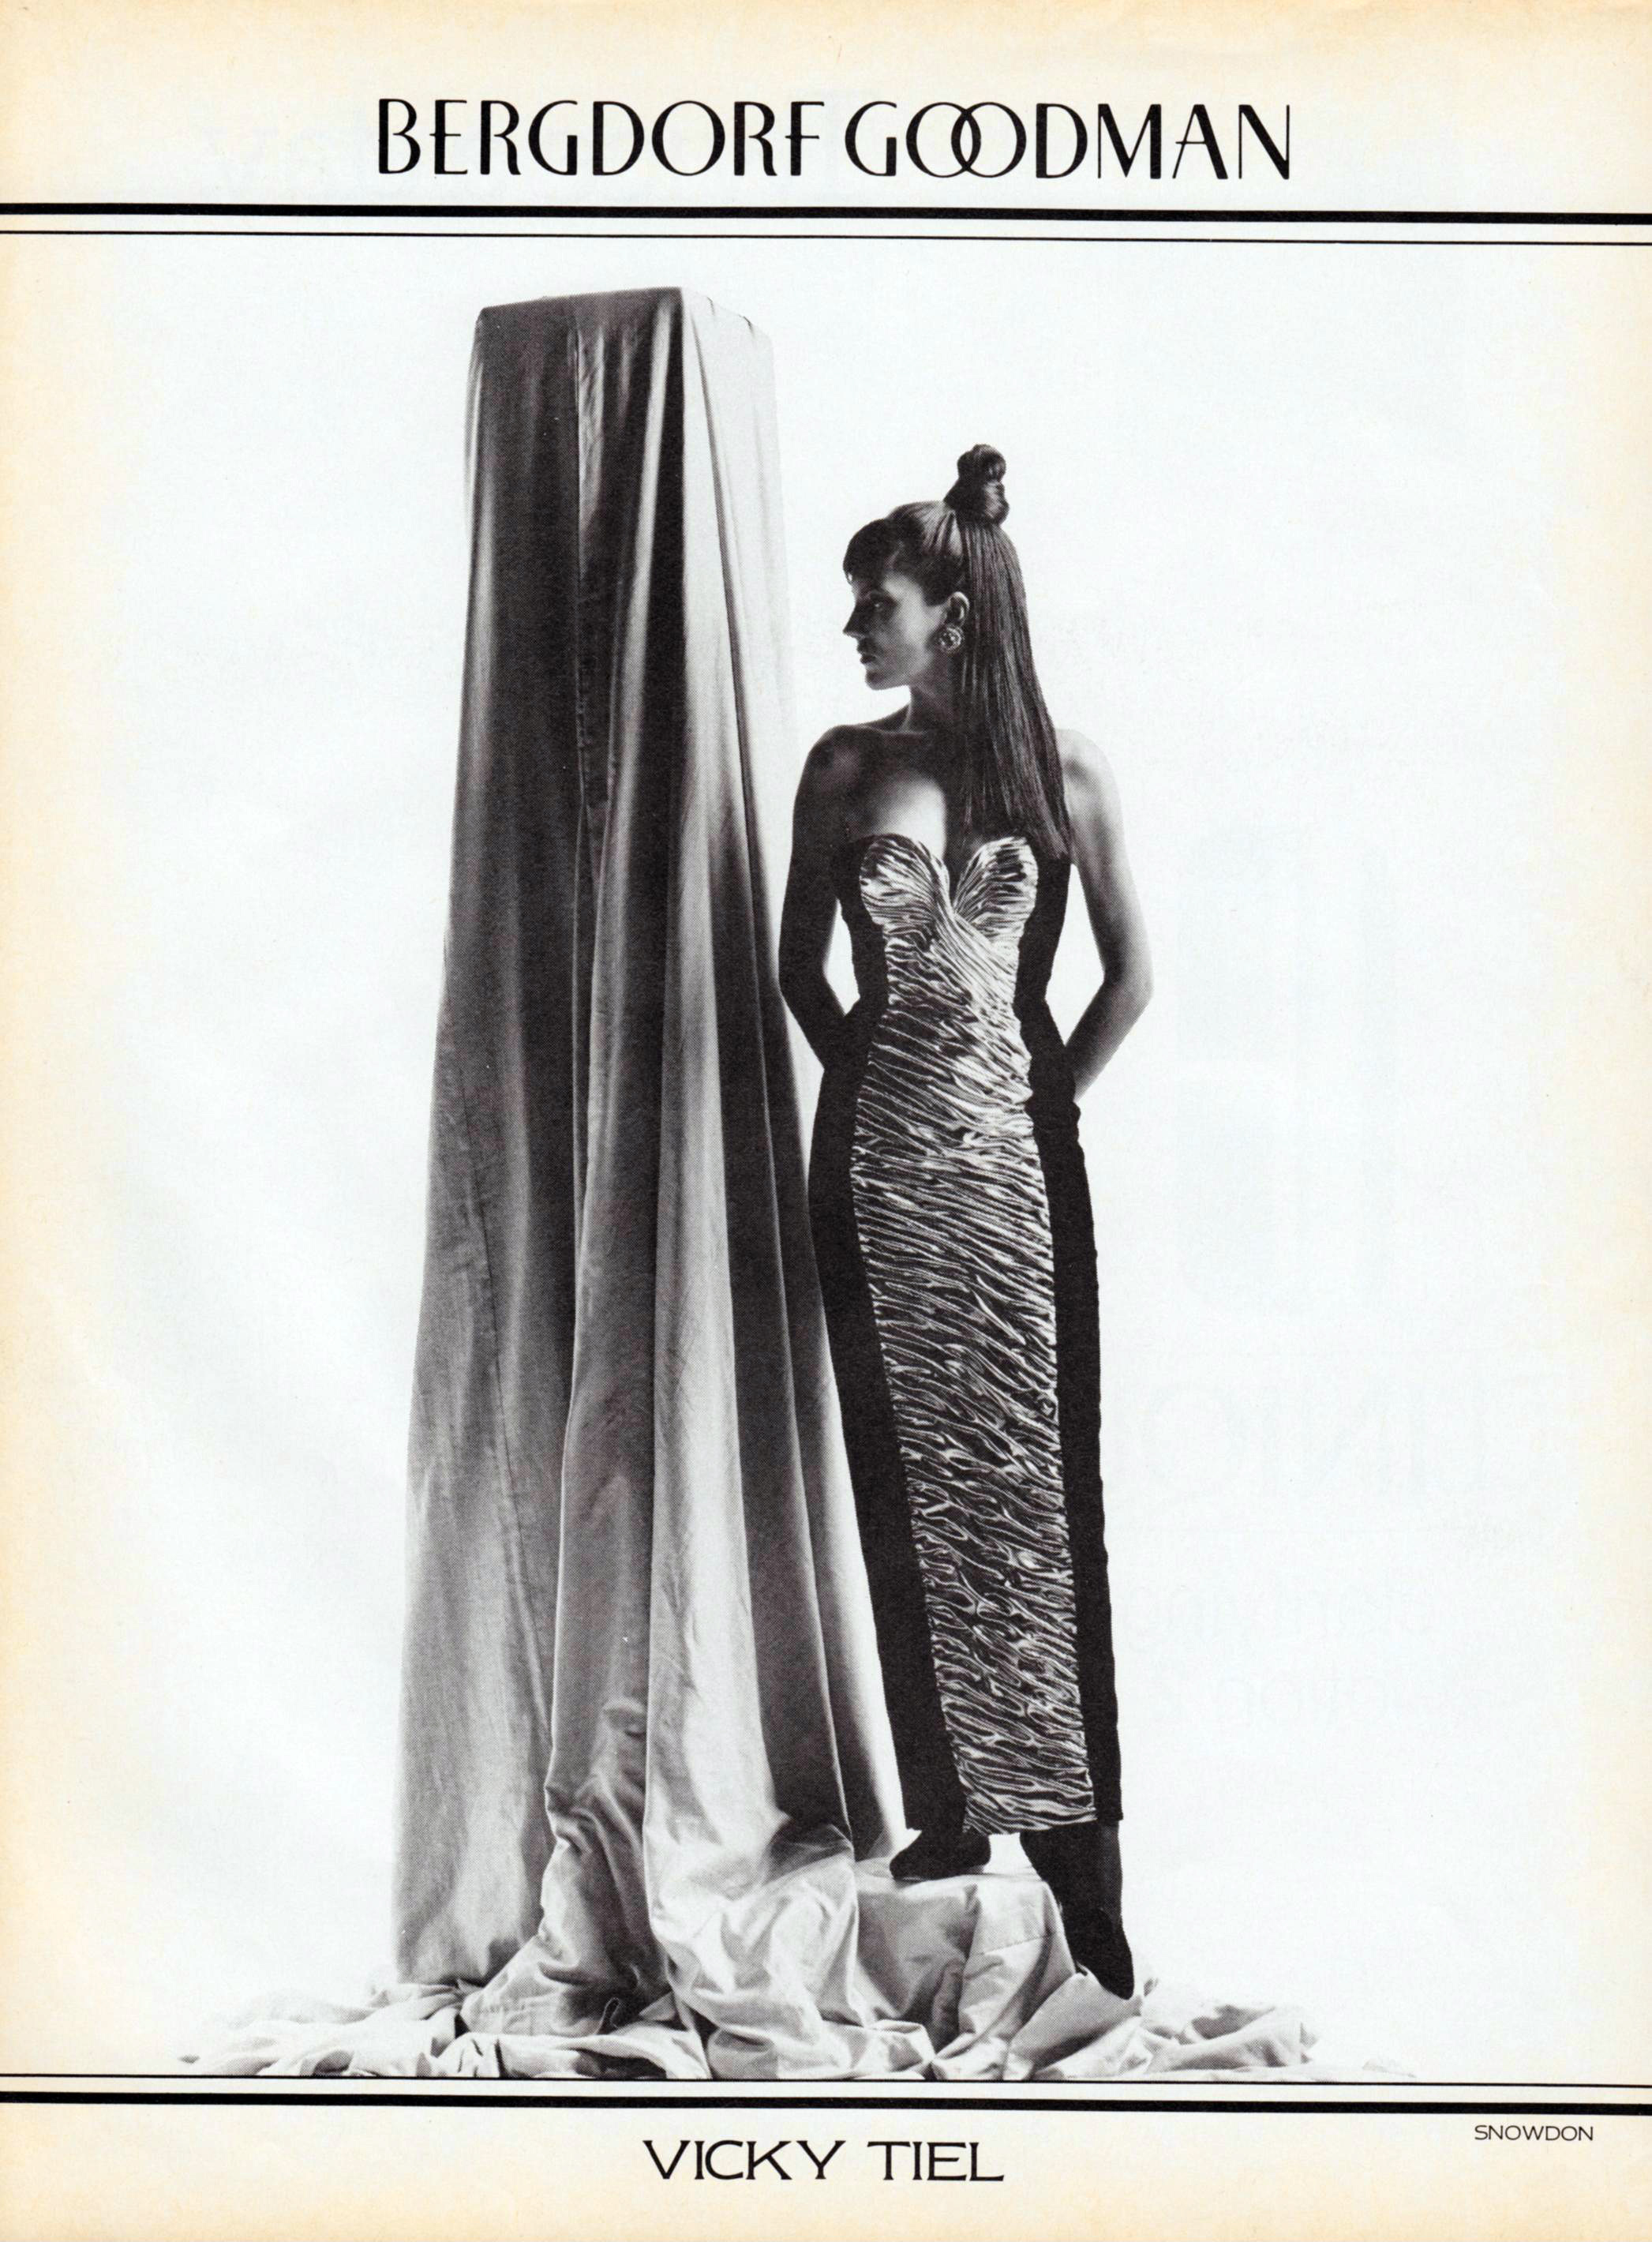 An ad for Vicky Tiel's couture salon at Bergdorf Goodman, 1986.